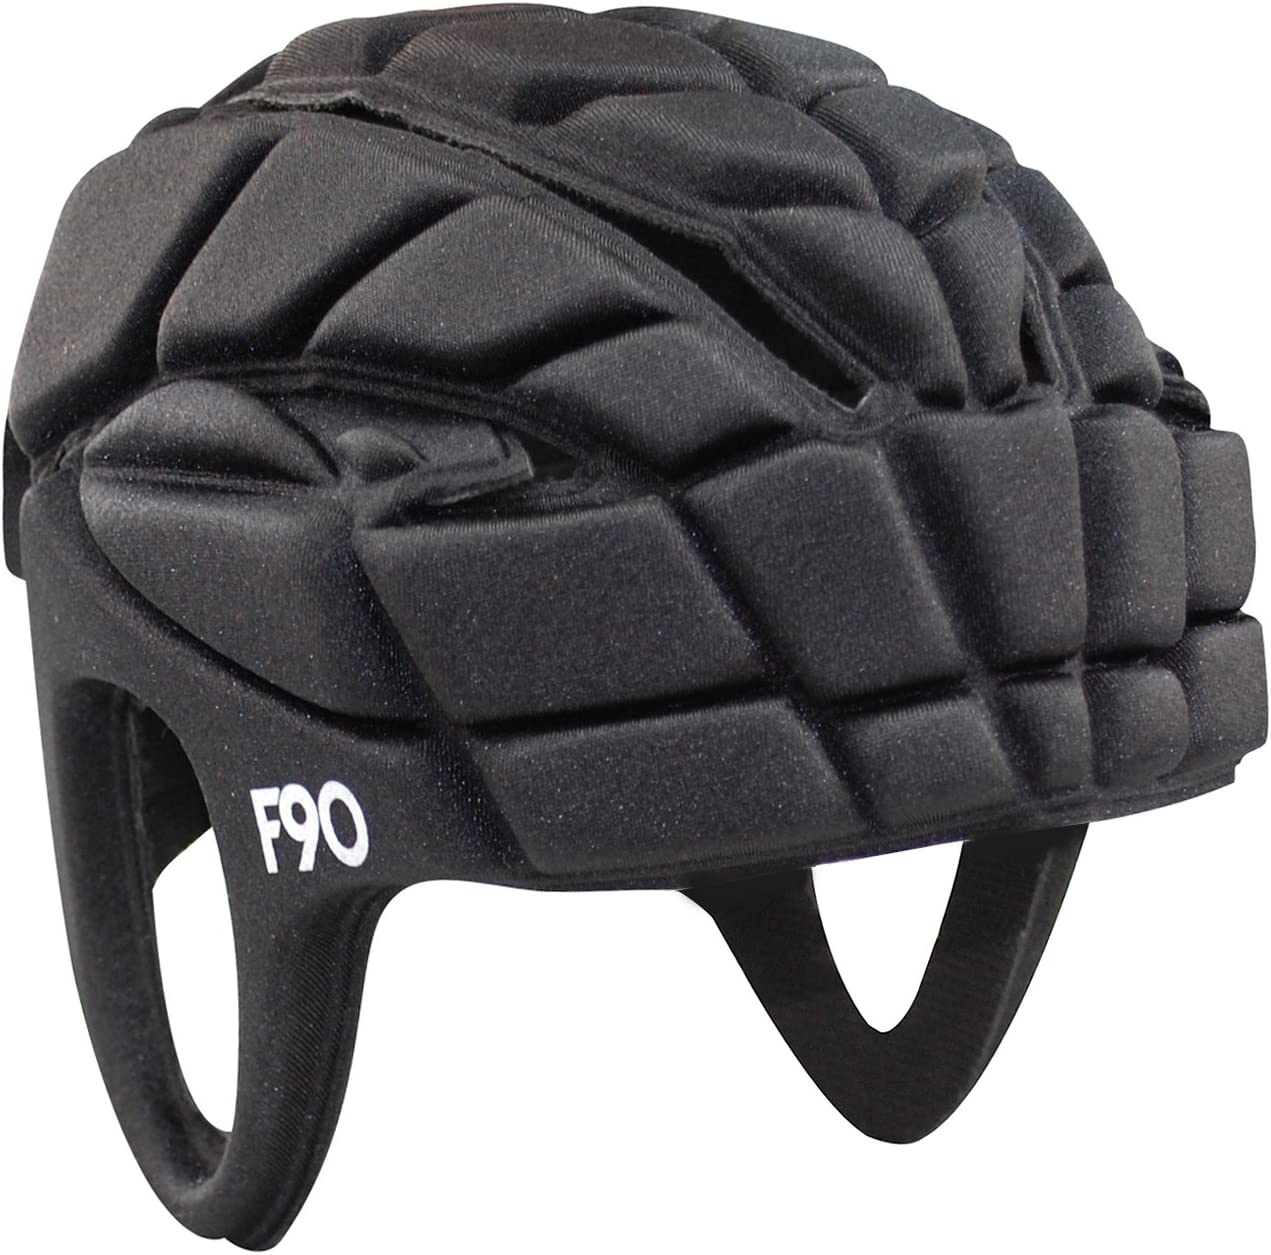 Max 90% OFF Cheap super special price Full90 Sports FN1 Headgear Performance